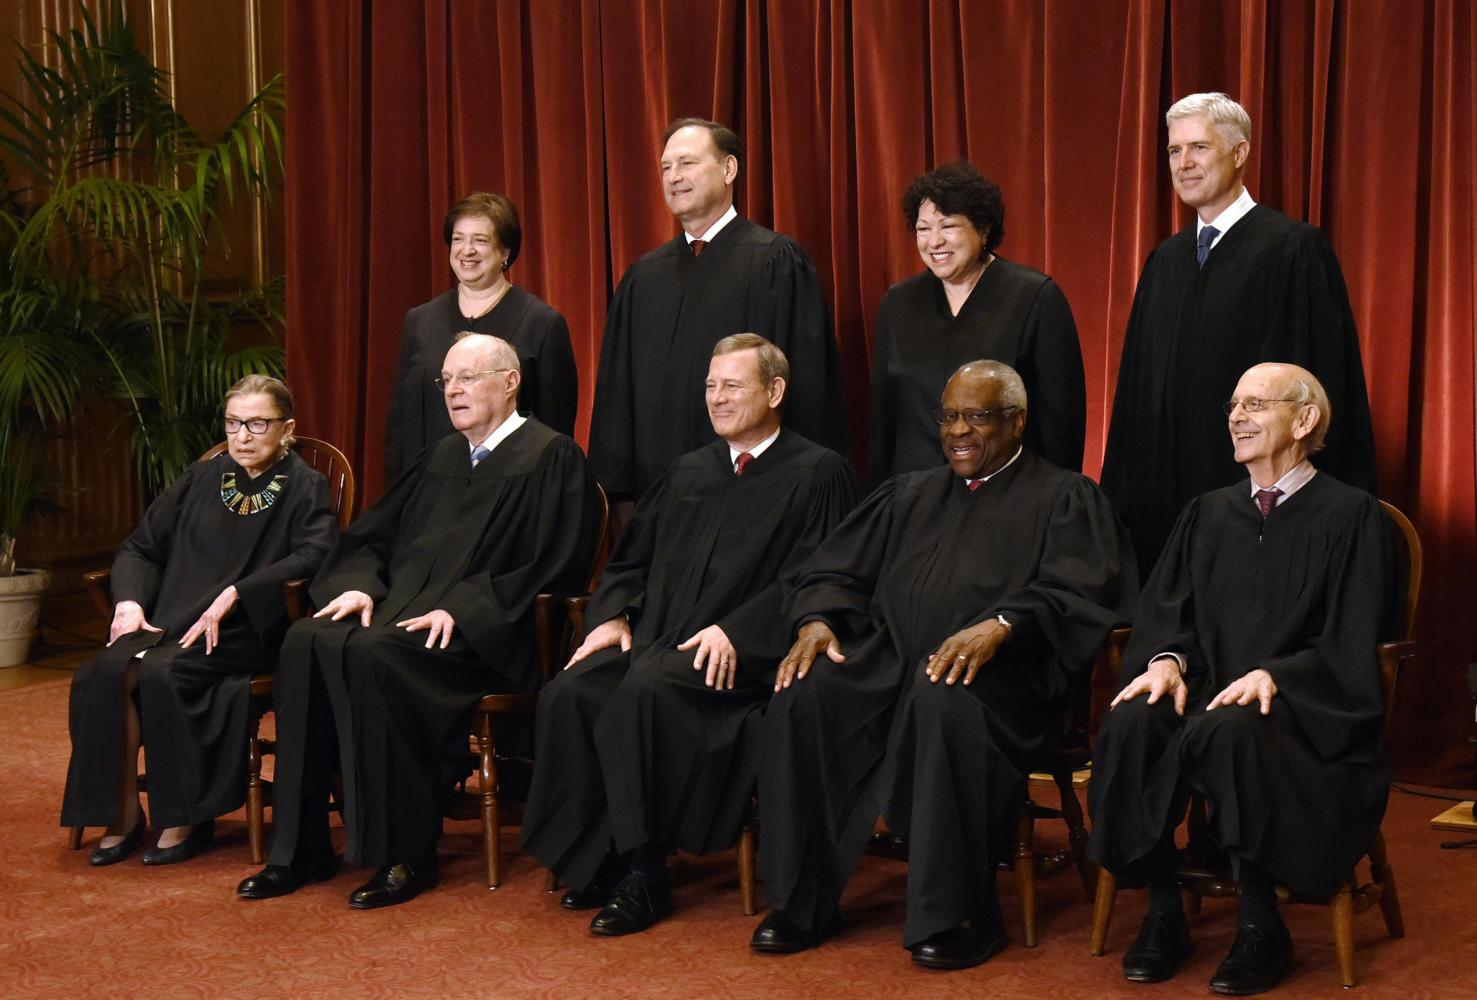 Members of the U.S. Supreme Court pose for a group photograph at the Supreme Court building on June 1, 2017, in Washington, D.C. Front row, seated from left, Associate Justice Ruth Bader Ginsburg, Associate Justice Anthony M. Kennedy, Chief Justice of the United States John G. Roberts, Associate Justice Clarence Thomas, and Associate Justice Stephen Breyer. Standing behind from left, Associate Justice Elena Kagan, Associate Justice Samuel Alito Jr., Associate Justice Sonia Sotomayor, and Associate Justice Neil Gorsuch. (Olivier Douliery/Abaca Press/TNS)